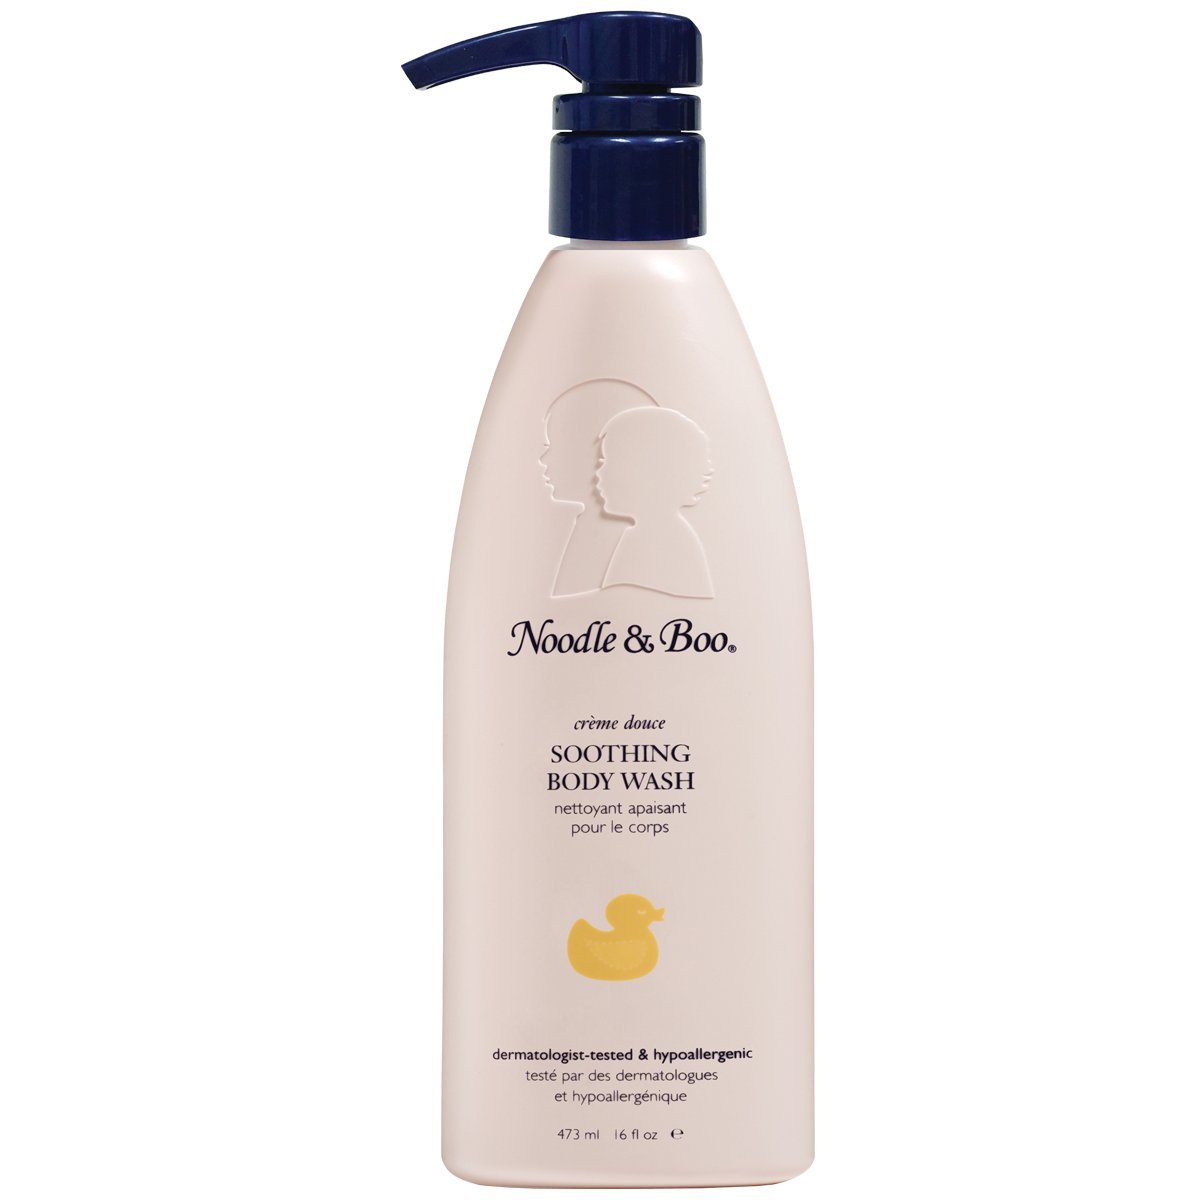 Noodle & Boo Soothing Baby Body Wash for Gentle Baby Care, 16 Fl Oz by Noodle & Boo